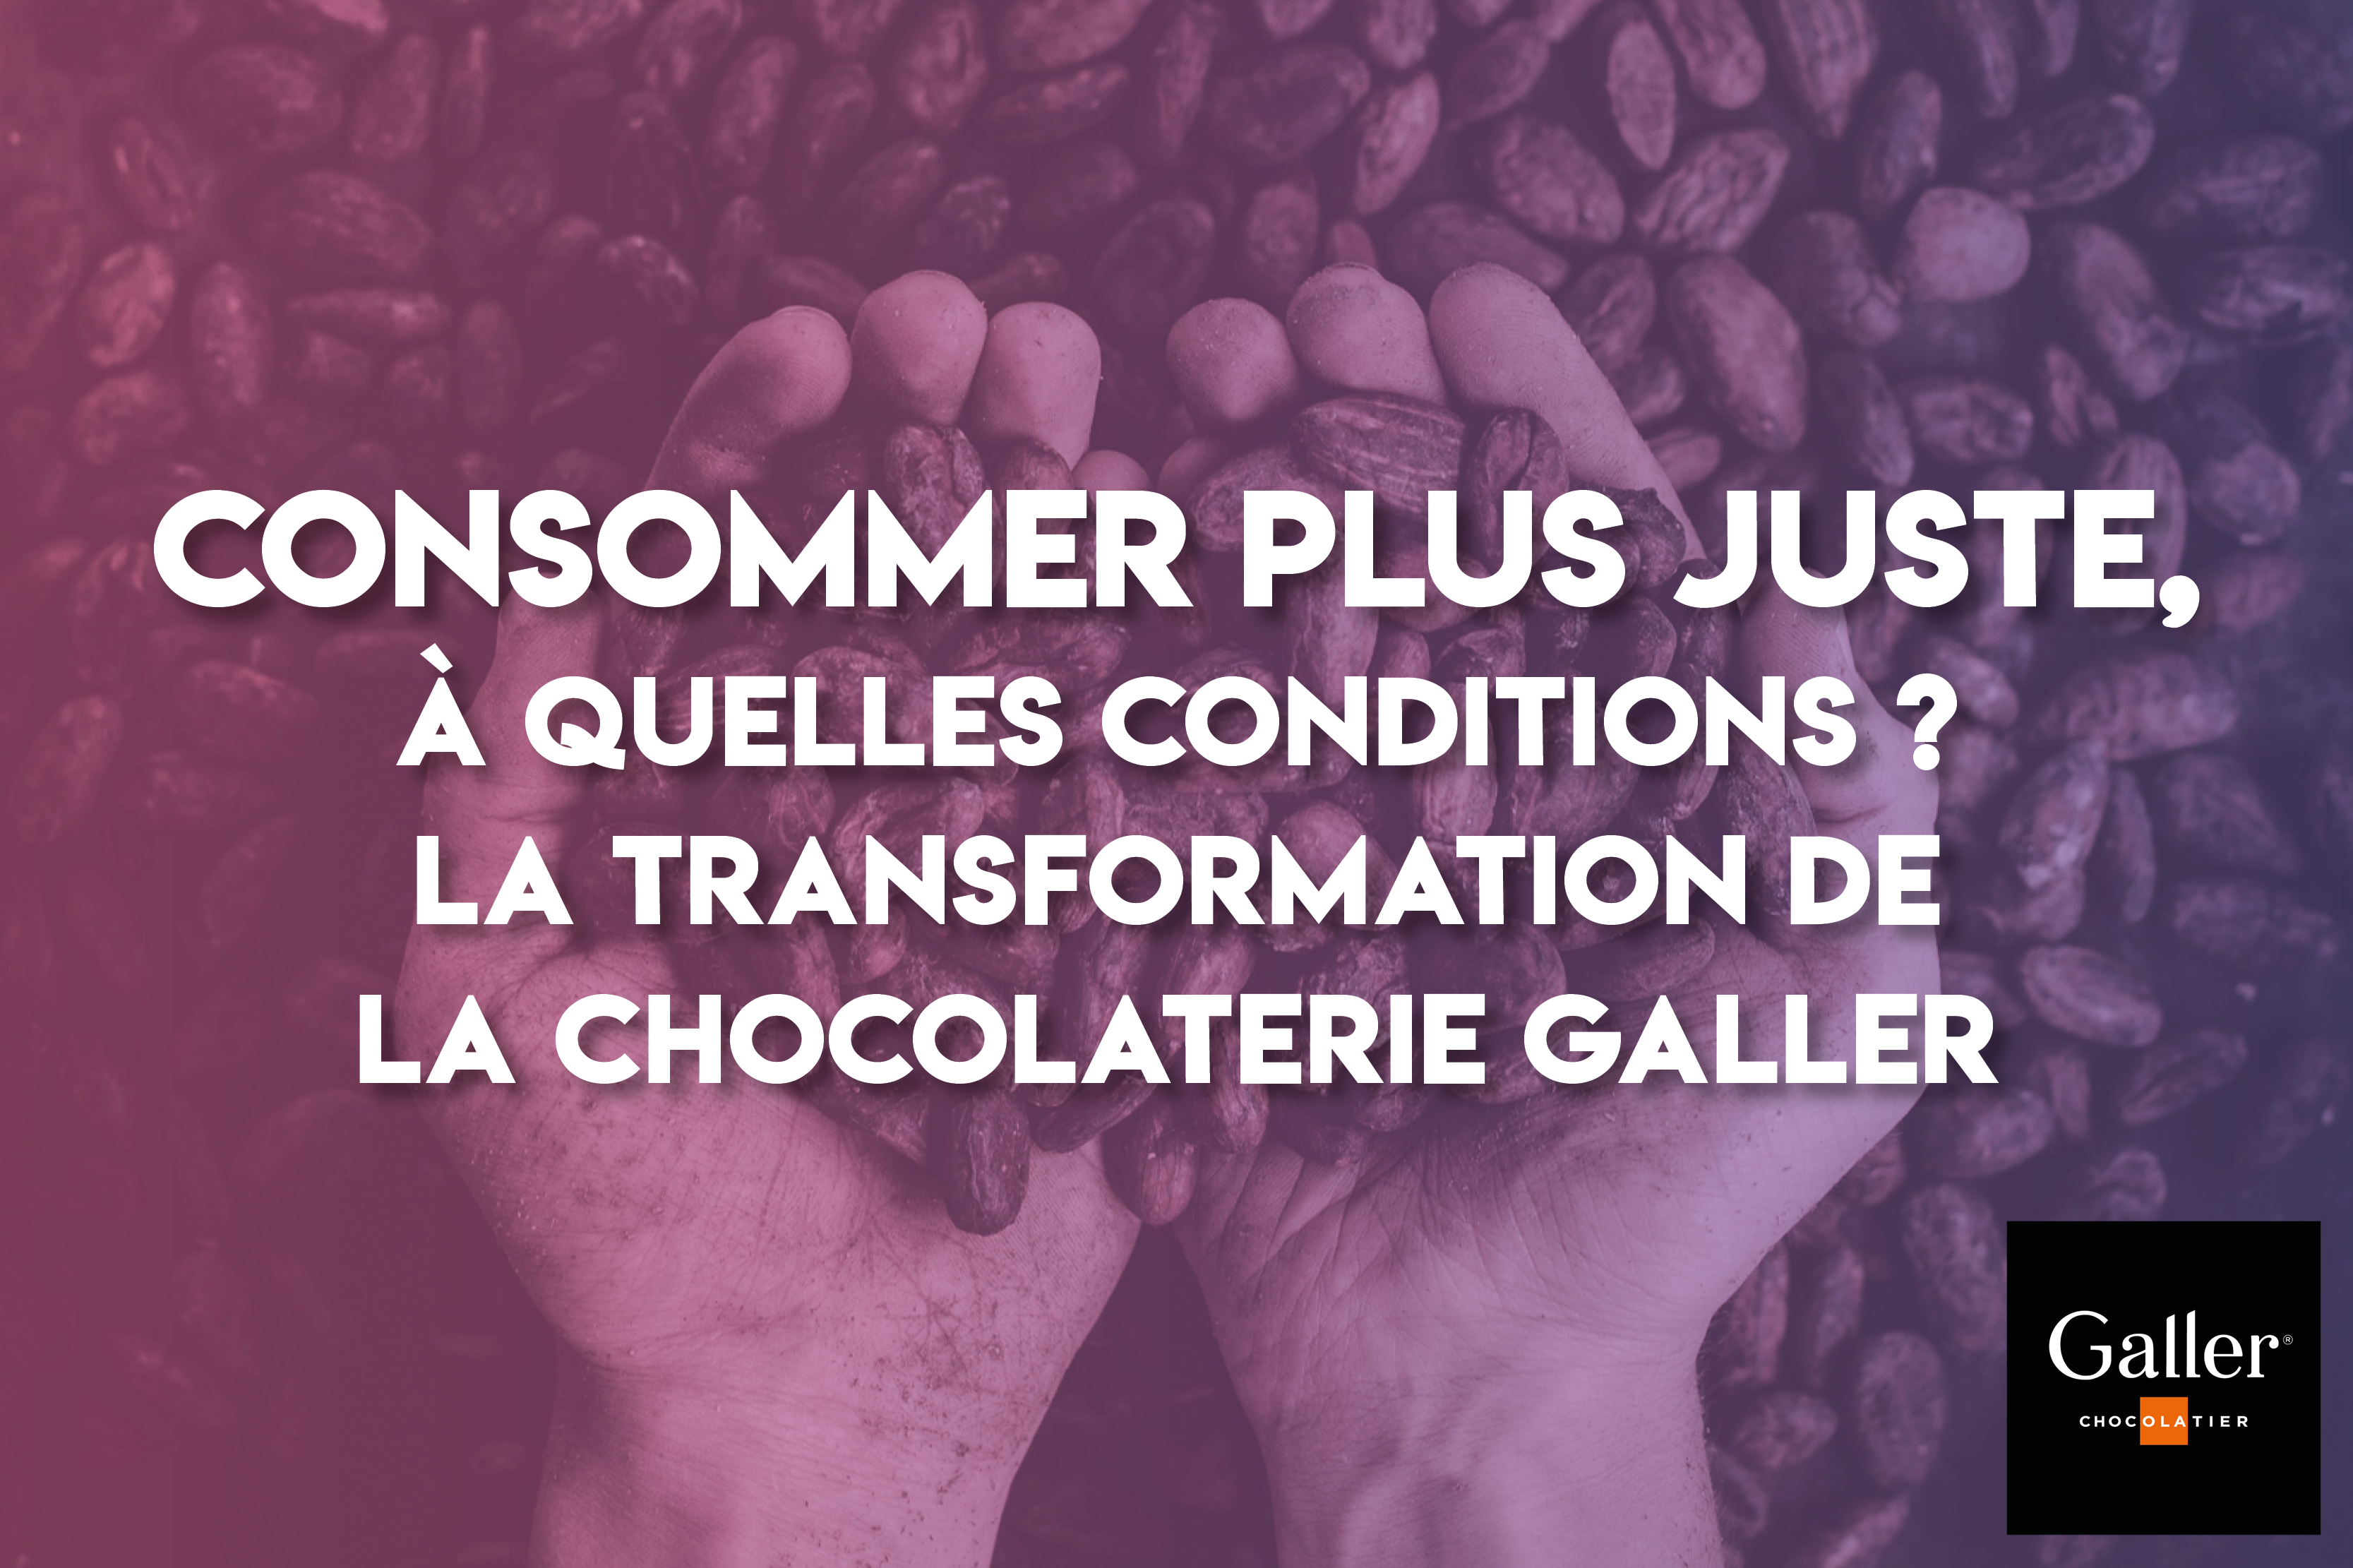 Consommer plus juste